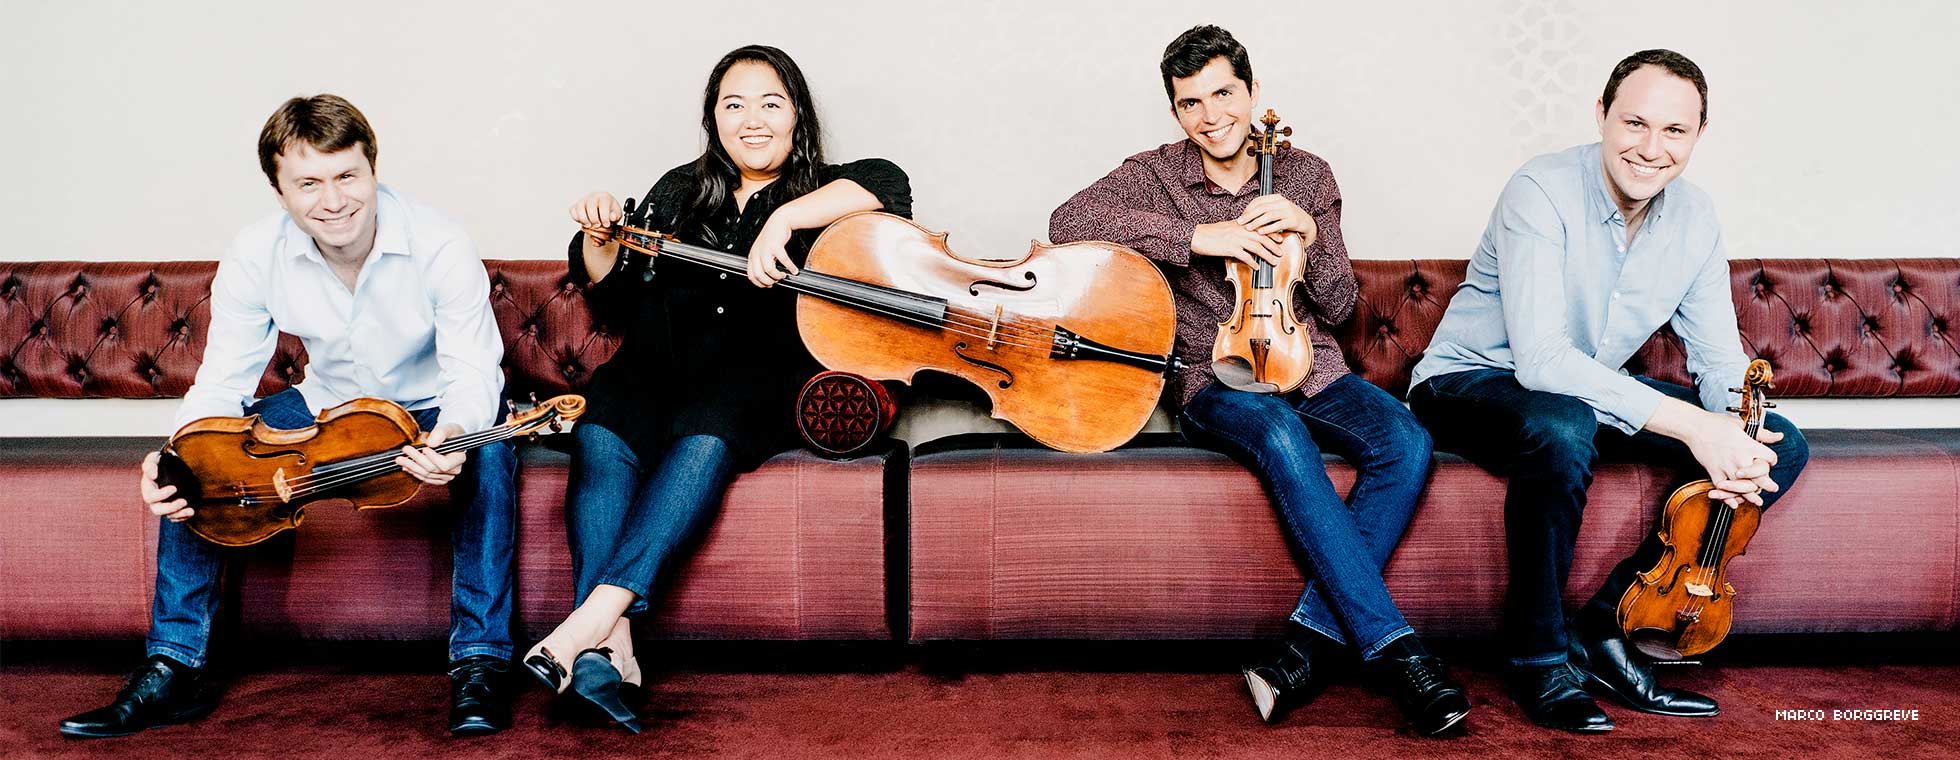 Members of the quartet sit on plush couches with their instruments.